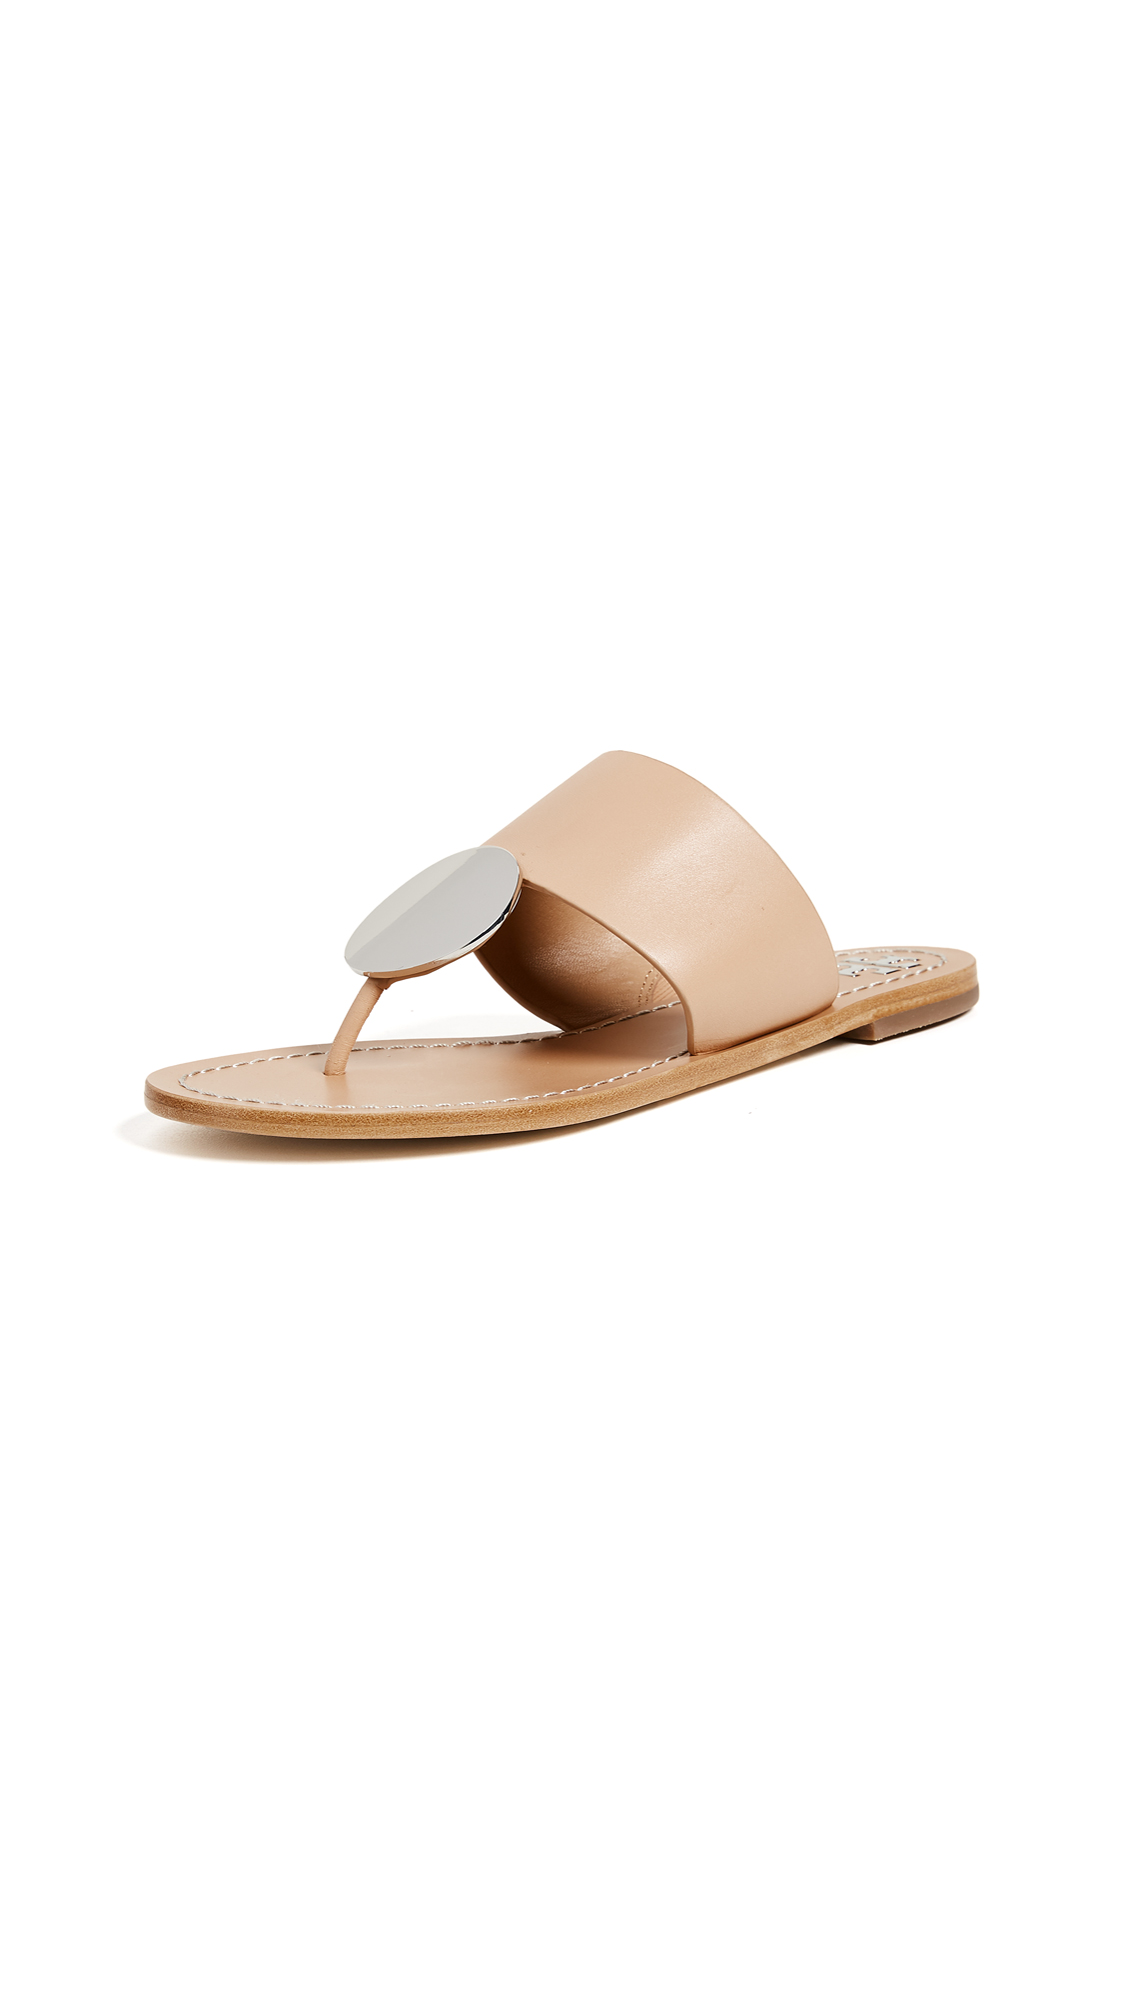 Tory Burch Patos Disk Sandals - Natural/Silver